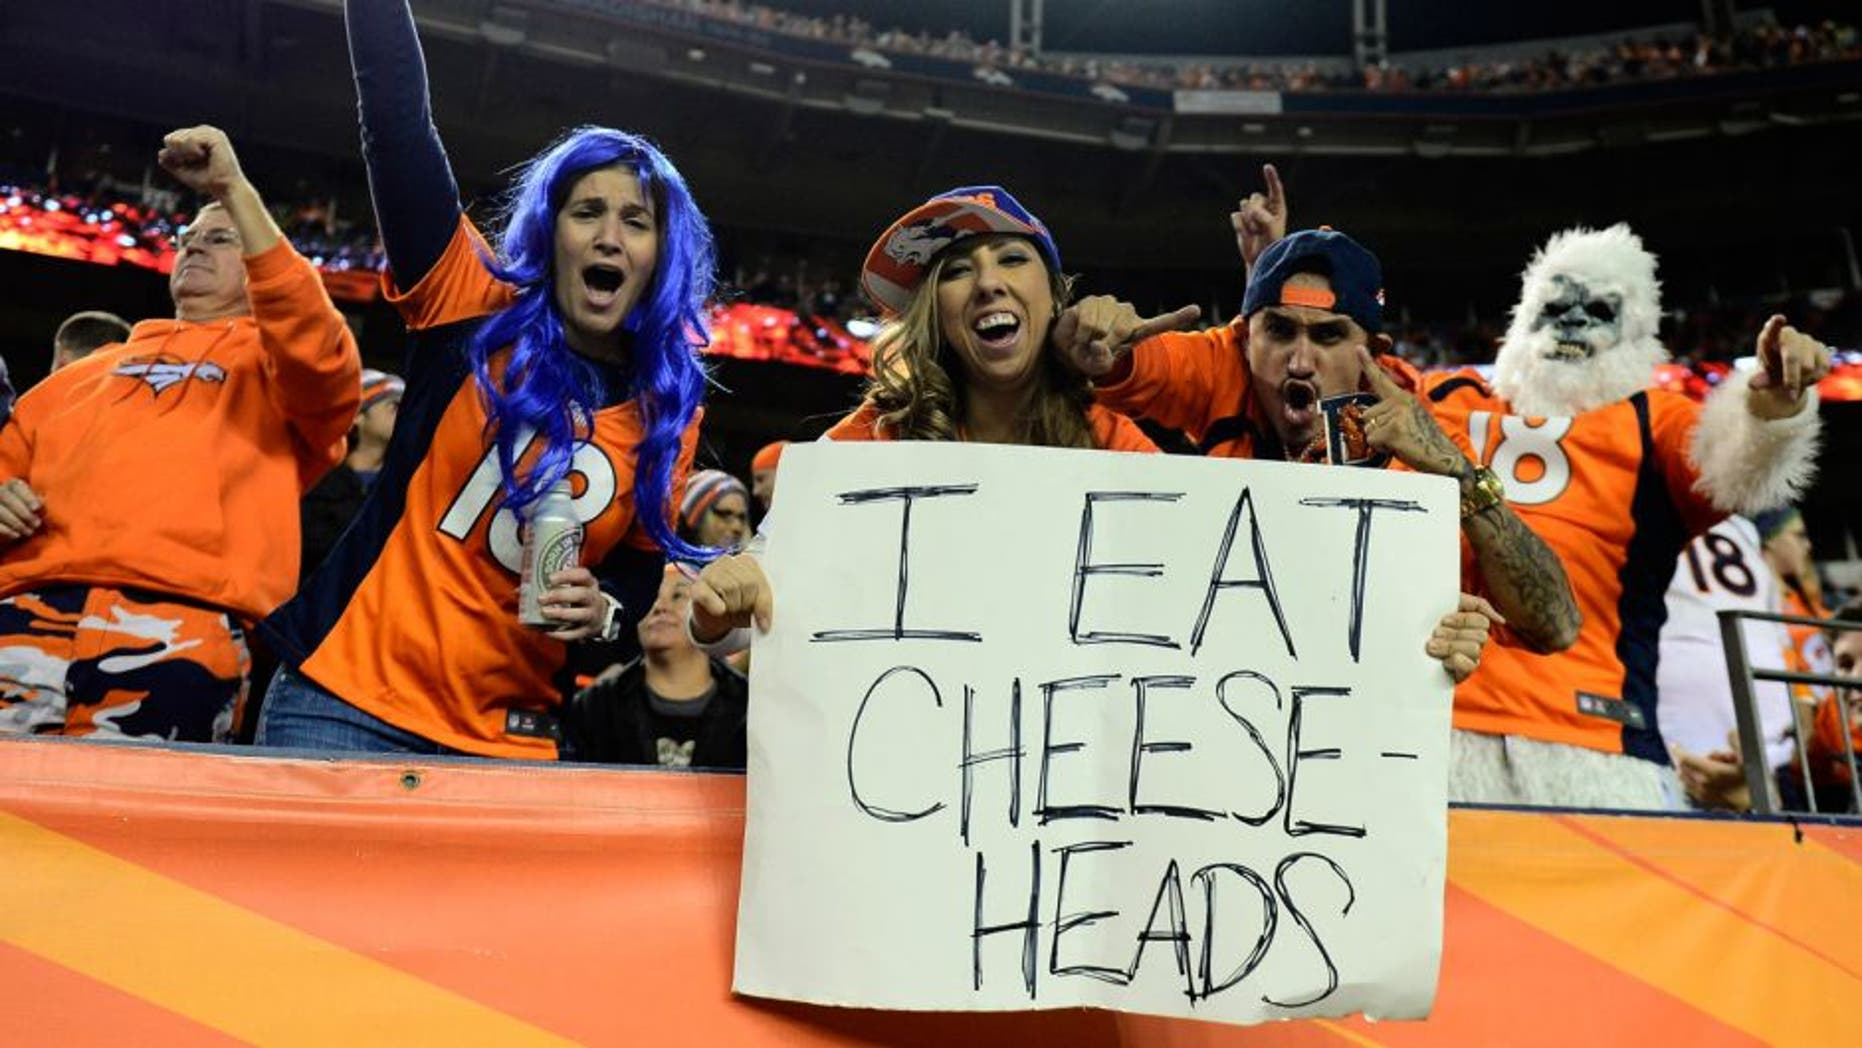 Nov 1, 2015; Denver, CO, USA; Denver Broncos fans react to the win over the Green Bay Packers at Sports Authority Field at Mile High. The Broncos defeated the Packer 29-10. Mandatory Credit: Ron Chenoy-USA TODAY Sports